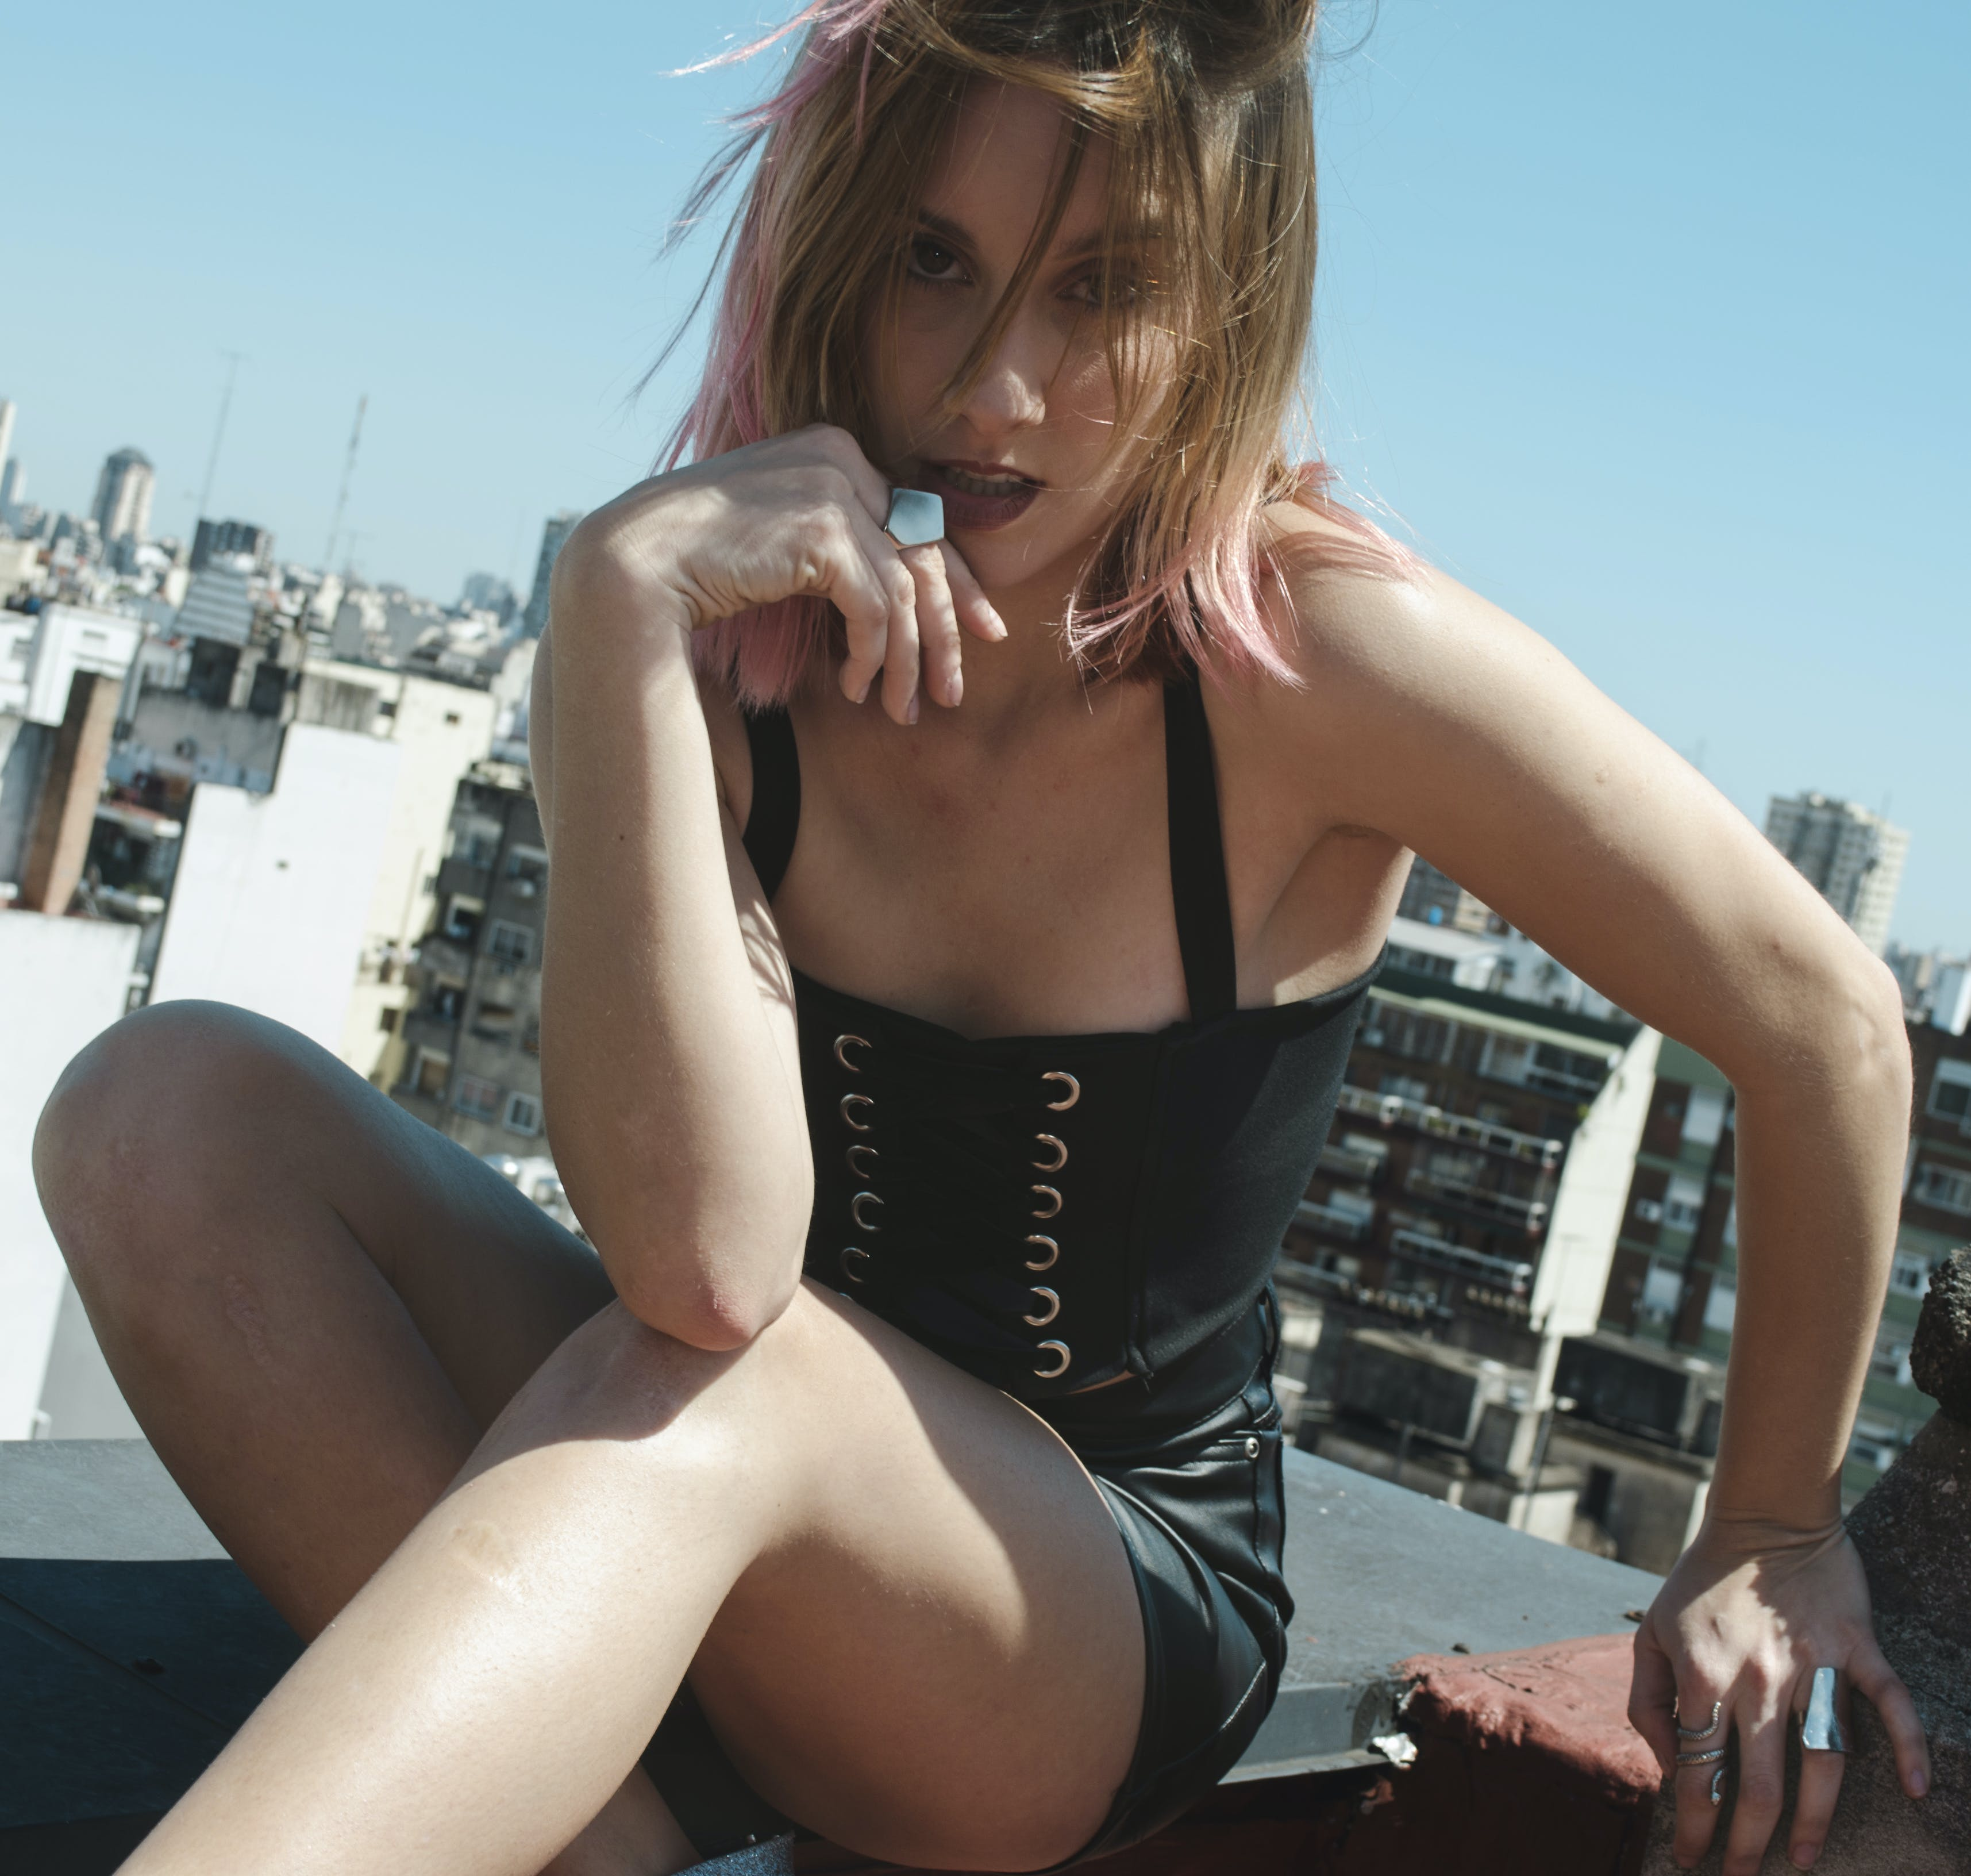 Woman Wearing Black Corset and Black Leather Short Shorts Posing